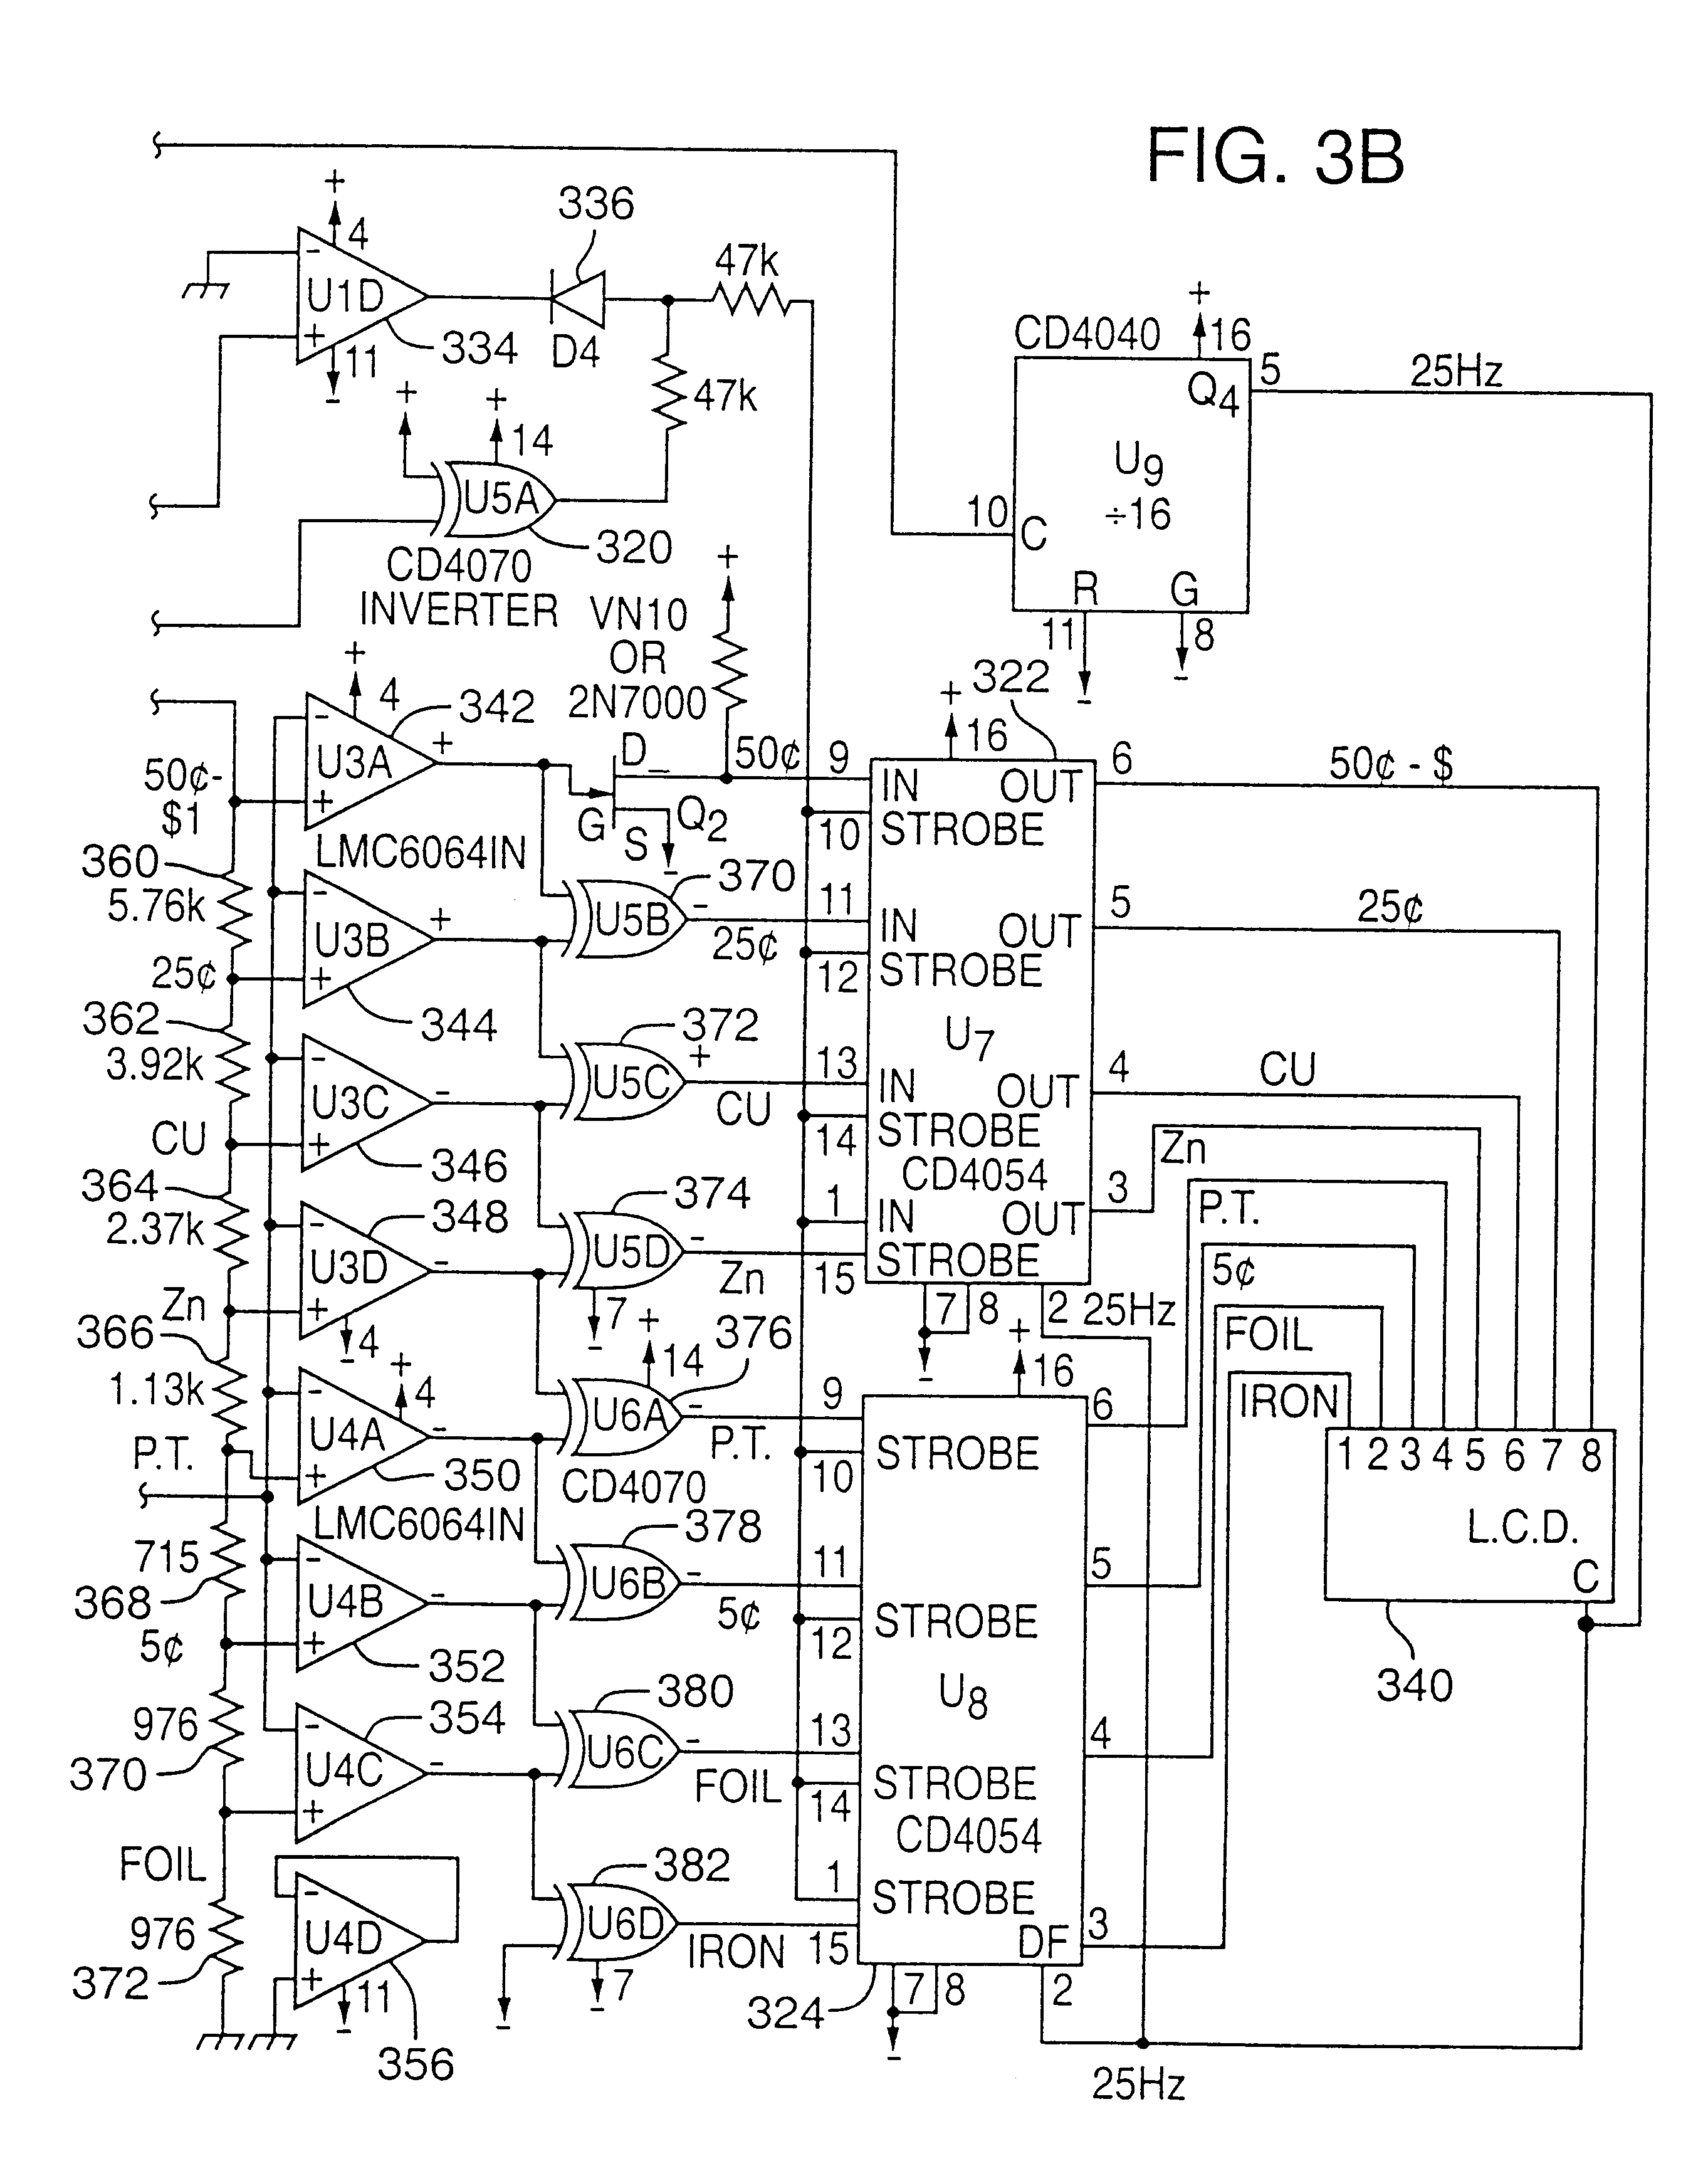 Wiring Diagram For Vw Beetle Alternator moreover Vw Electronic Ignition Wiring Diagram as well Viewtopic further 73 Vw Bug Engine Schematics moreover Vw Bug Generator Wiring Diagram. on vw bug coil wiring diagram